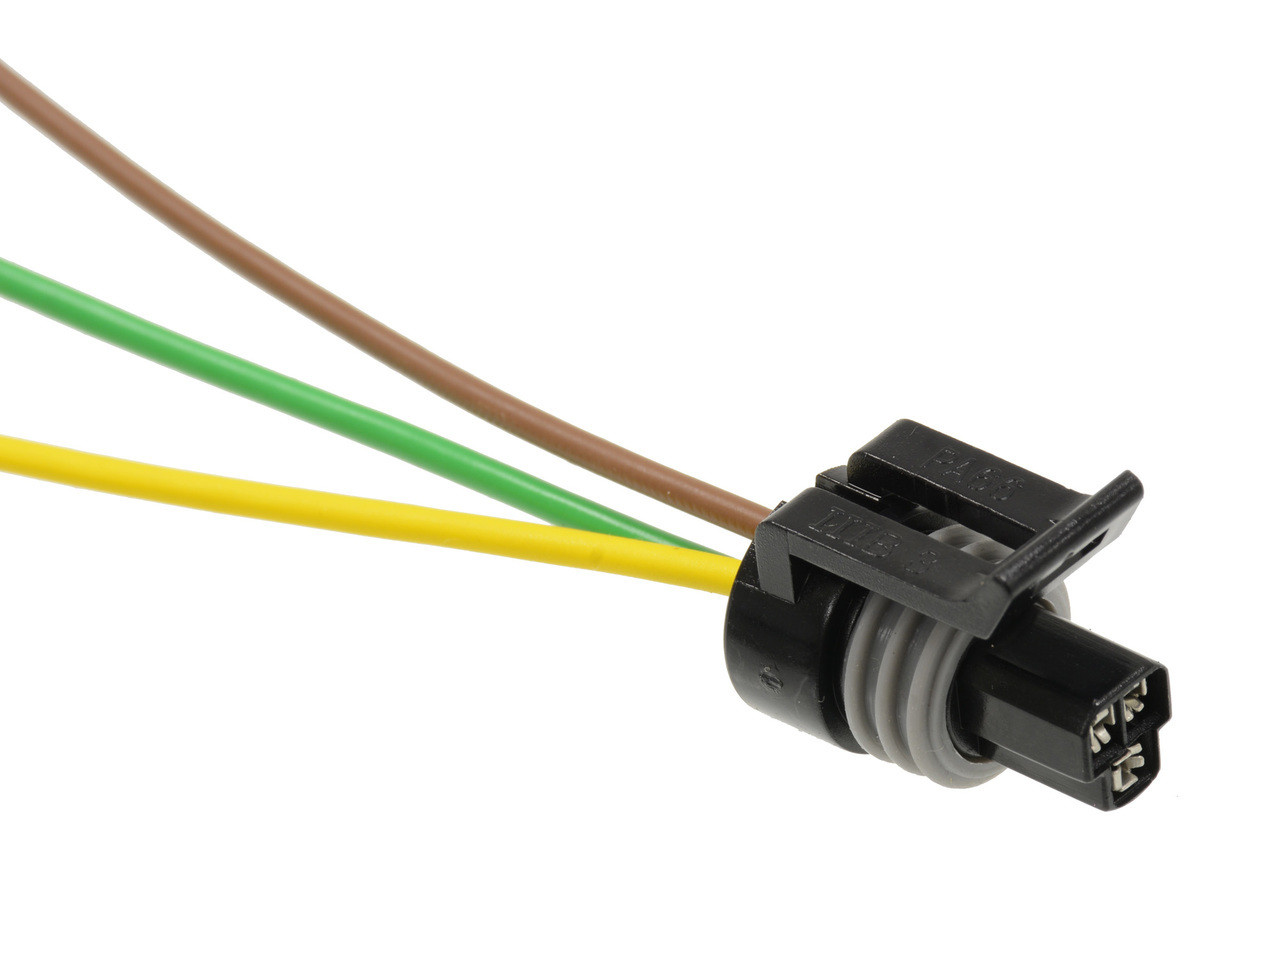 hight resolution of ls1 coolant temperature temp sensor connector harness 3 wire fits gm gm coolant temp sensor wiring gm coolant temp sensor wiring